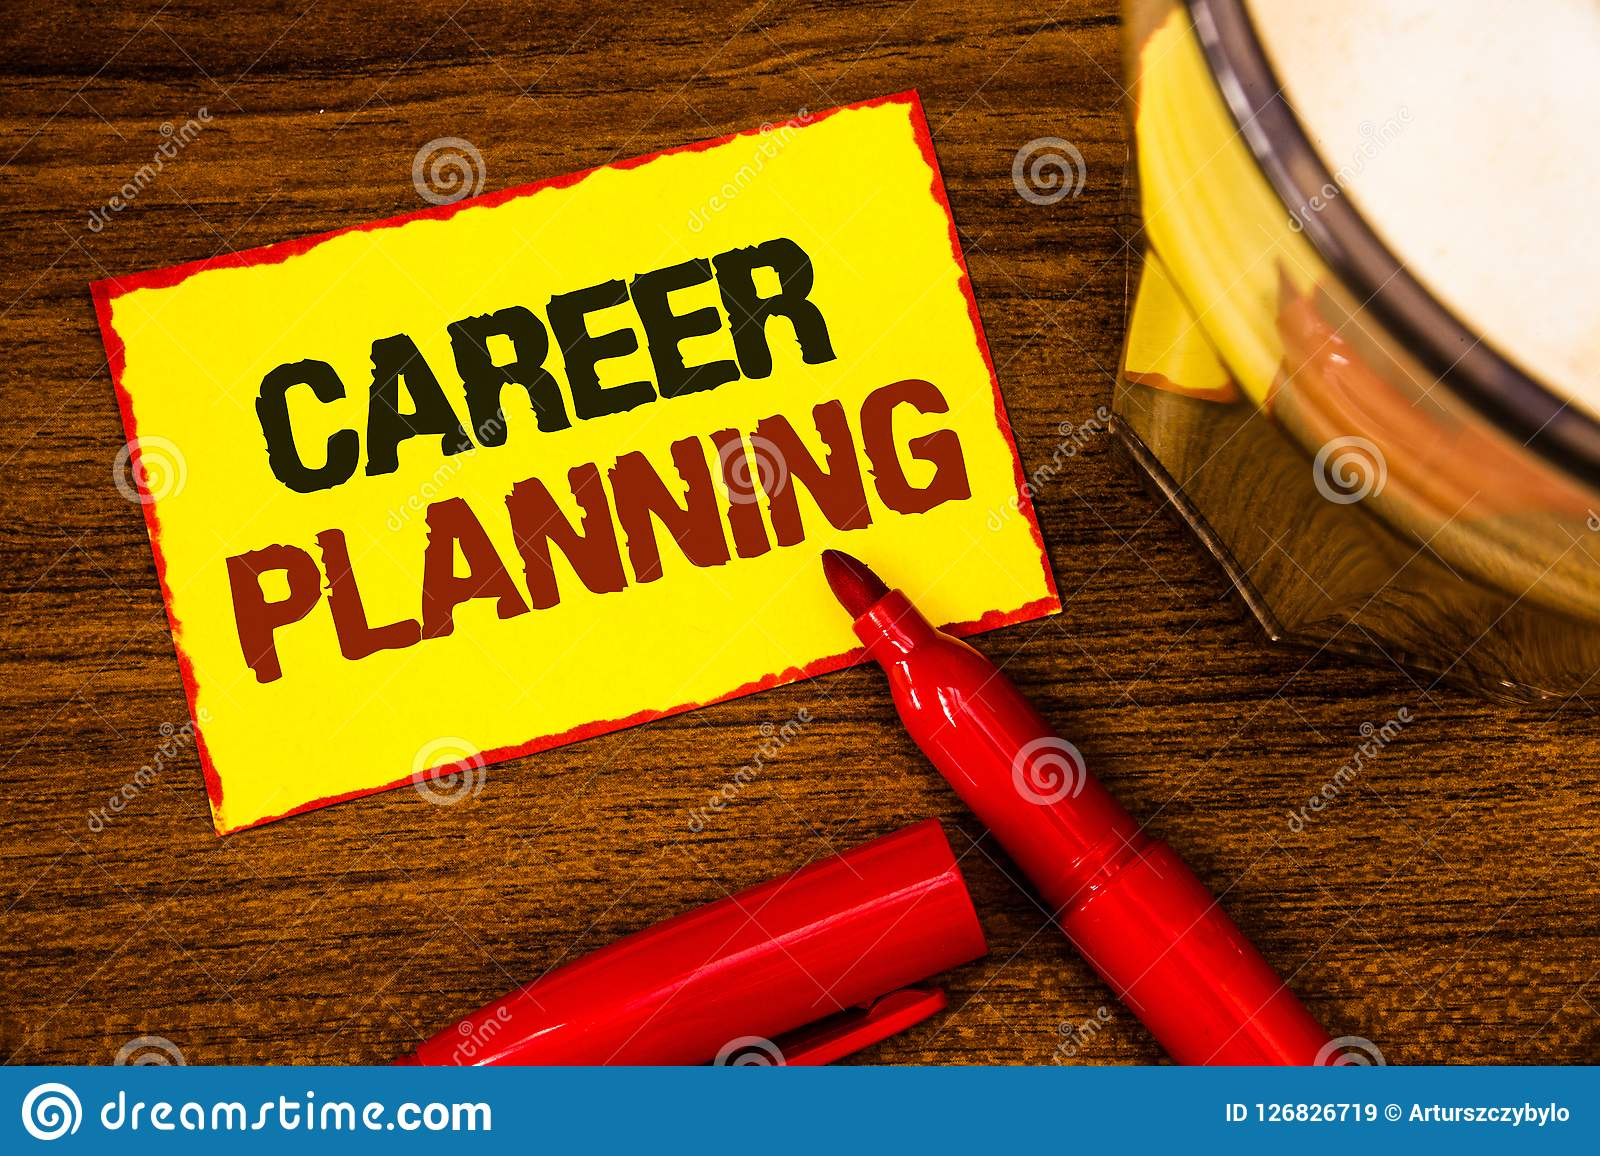 Writing note showing Career Planning. Business photo showcasing Professional Development Educational Strategy Job Growth Words ye